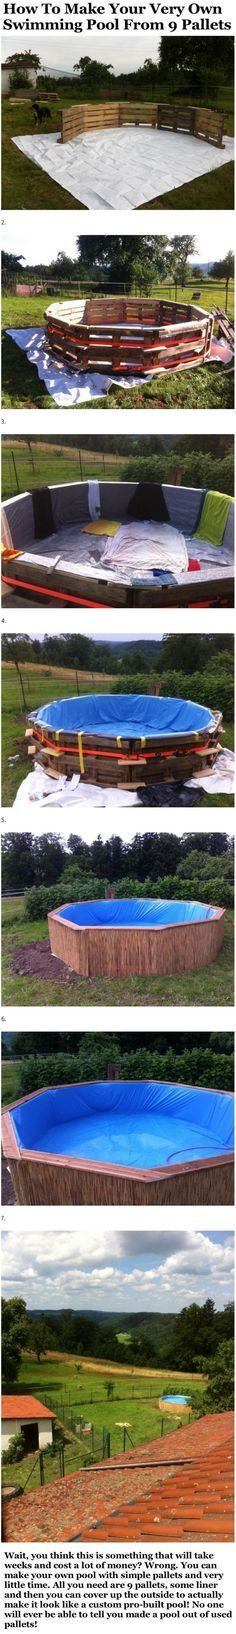 How To Make Your Very Own Swimming Pool From 9 Pallets pool backyard diy craft crafts diy ideas diy crafts summer crafts how to home crafts tutorials pools woodworking